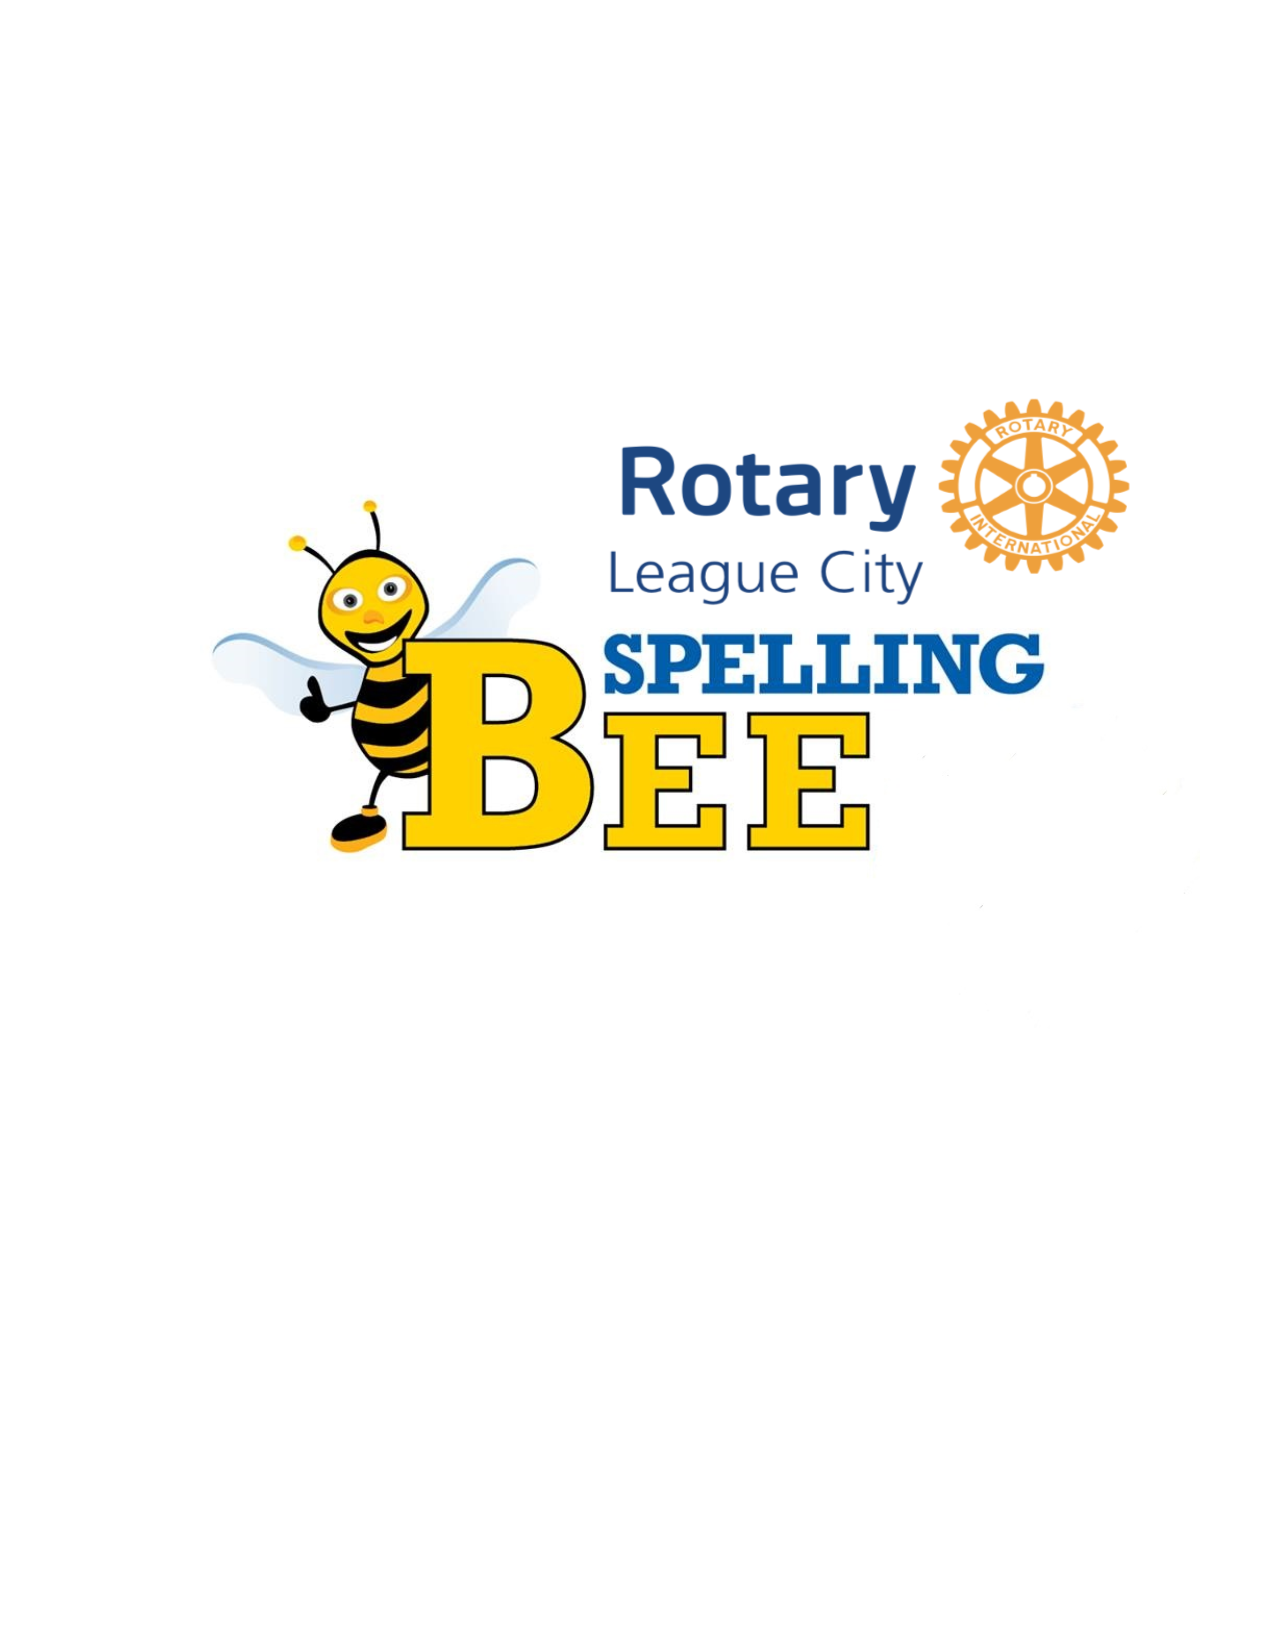 League City Rotary announces Adult Spelling Bee | Rotary